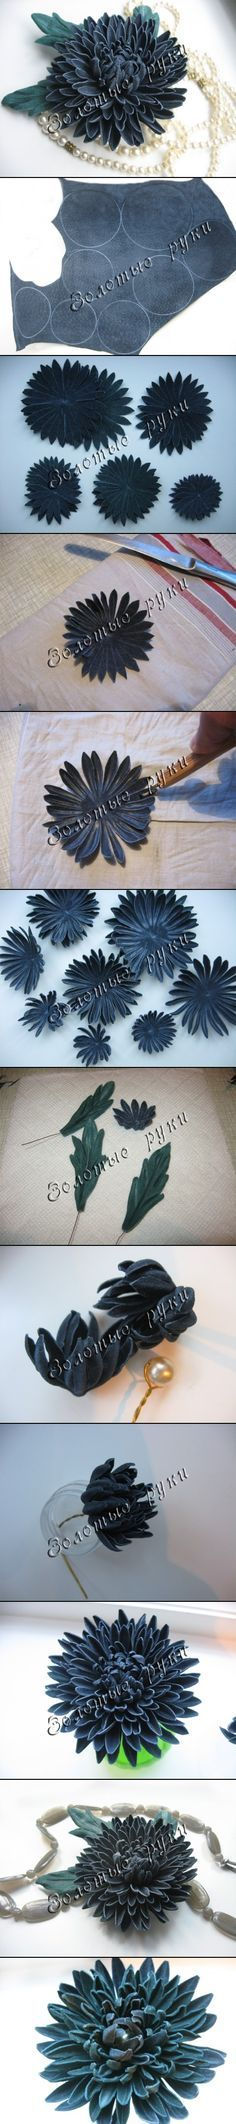 Leather chrysanthemum tutorial - it's done with suede, but the leather is treated with a 1:1 mix of water and white glue (polyvinyl acetate) before cutting/shaping. For the instructions, use Chrome and translate the page.